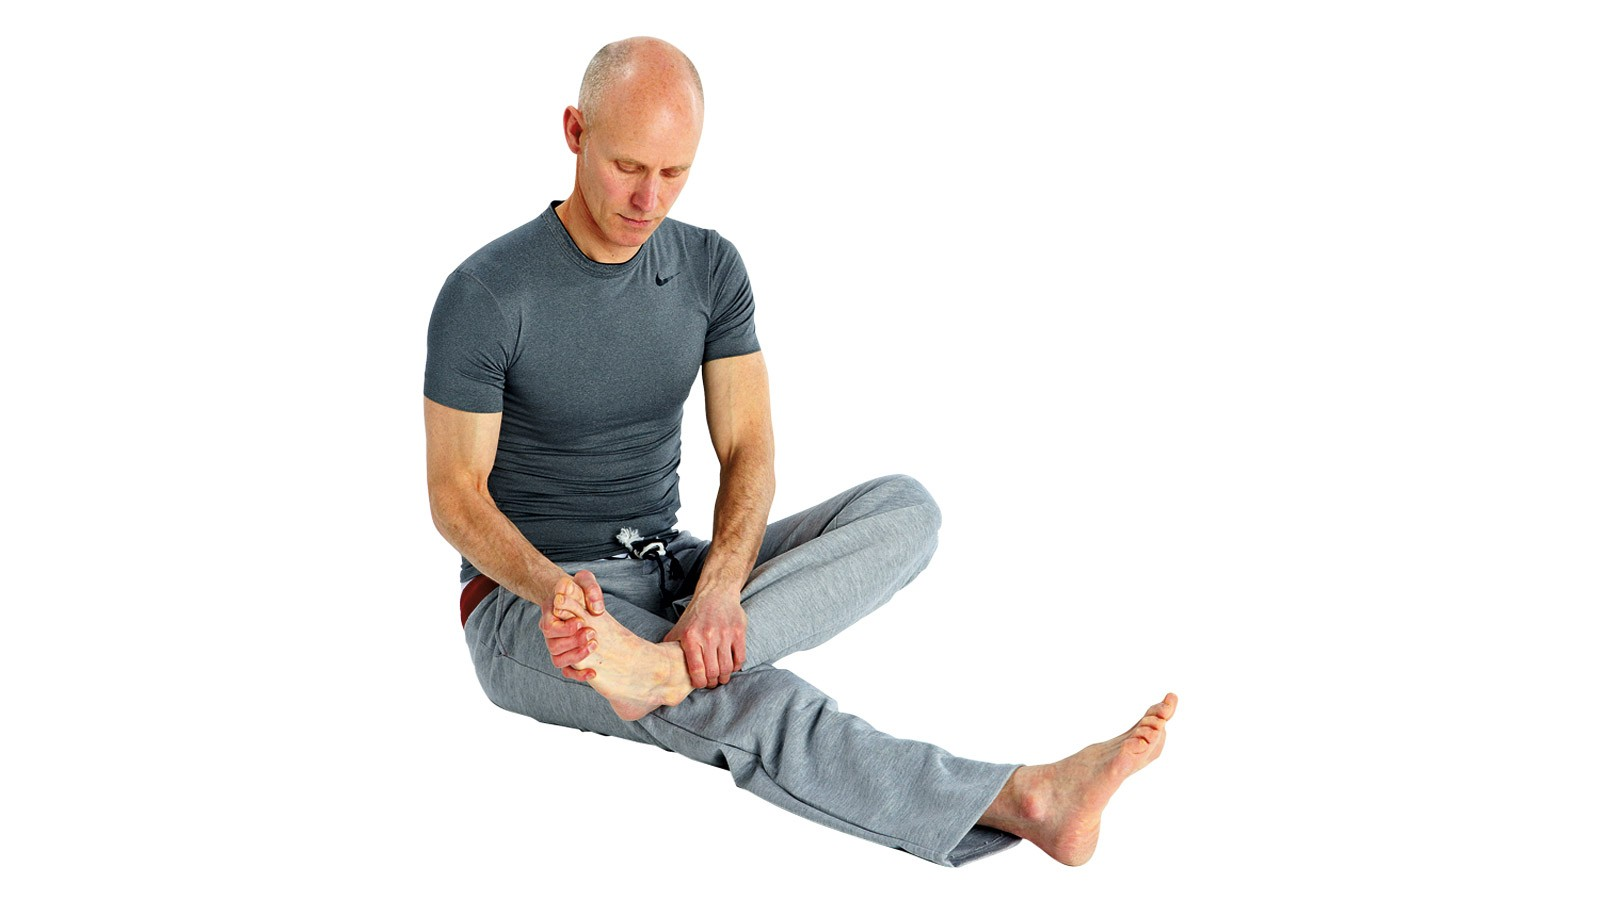 Ankle joint rotations